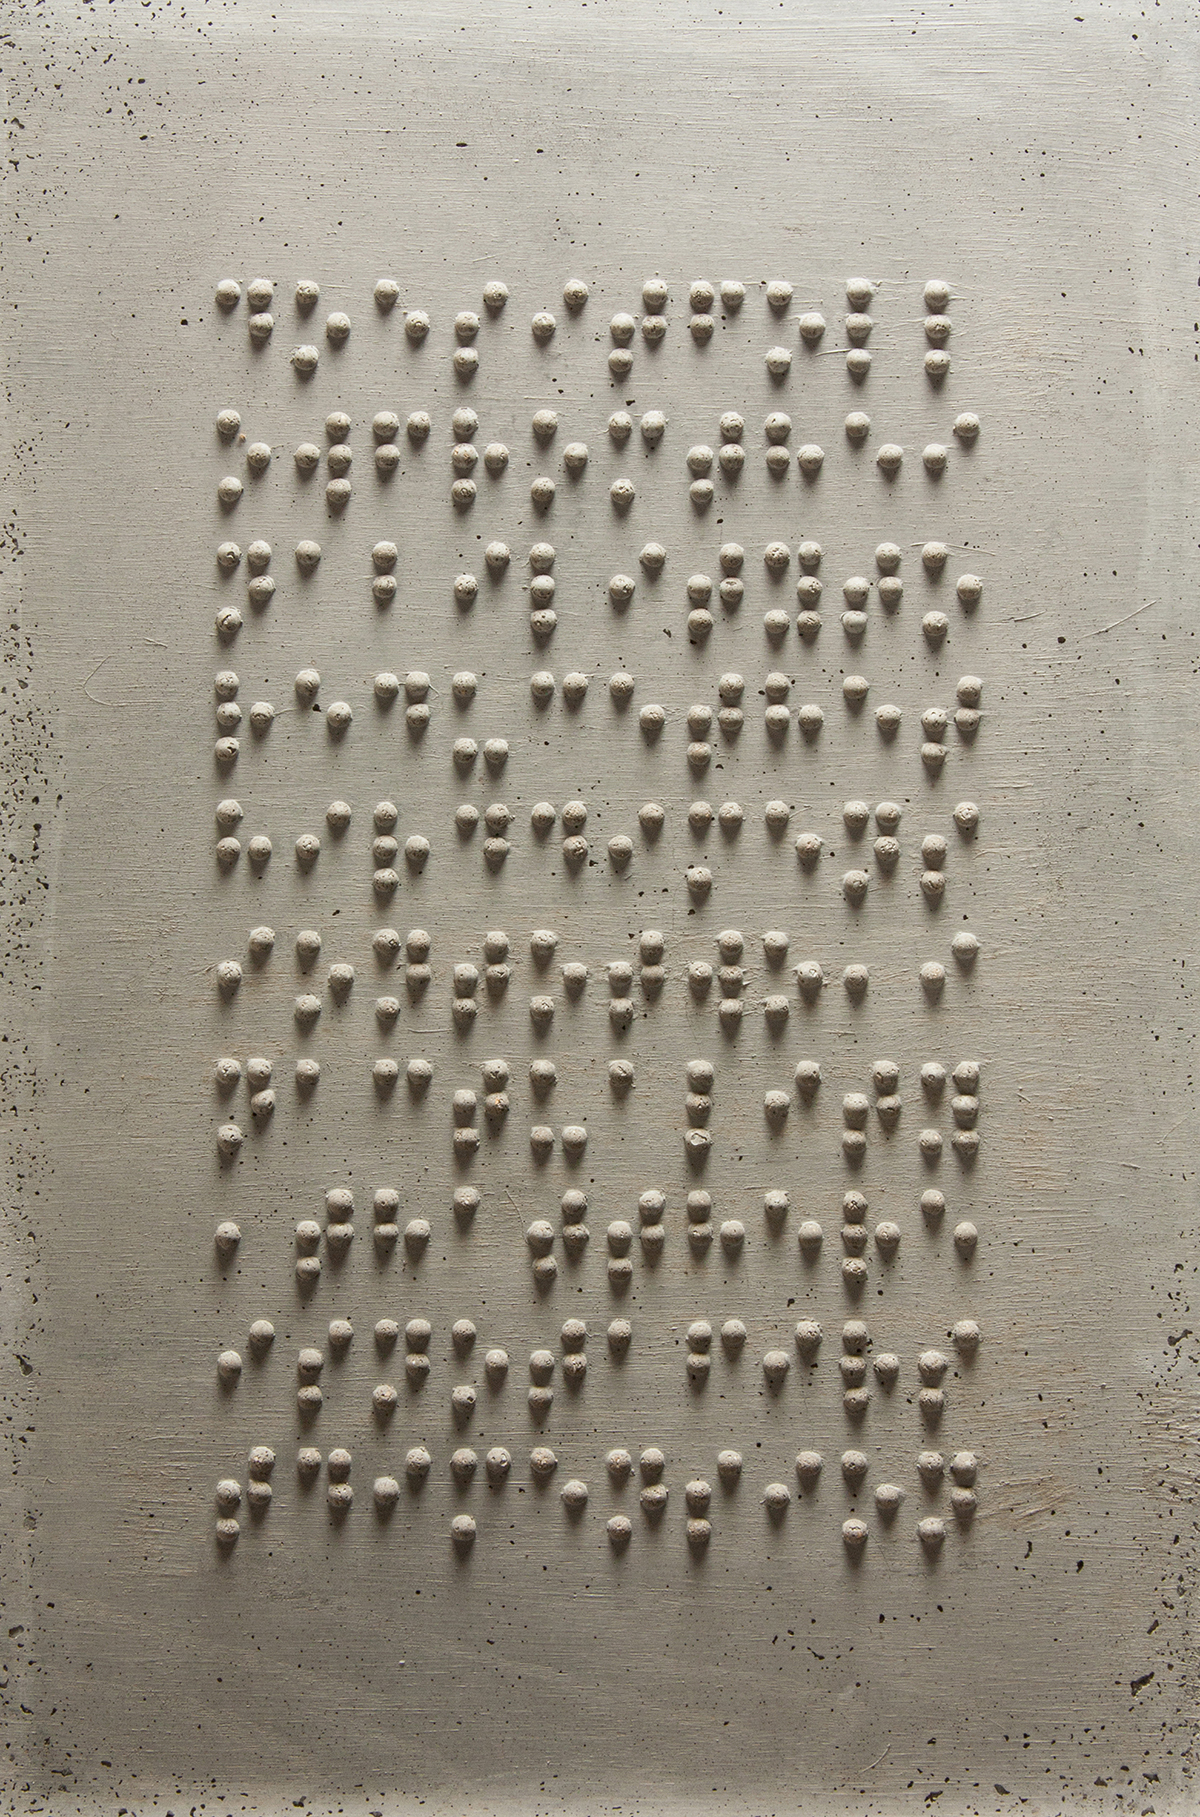 williams braille tablet 1200px